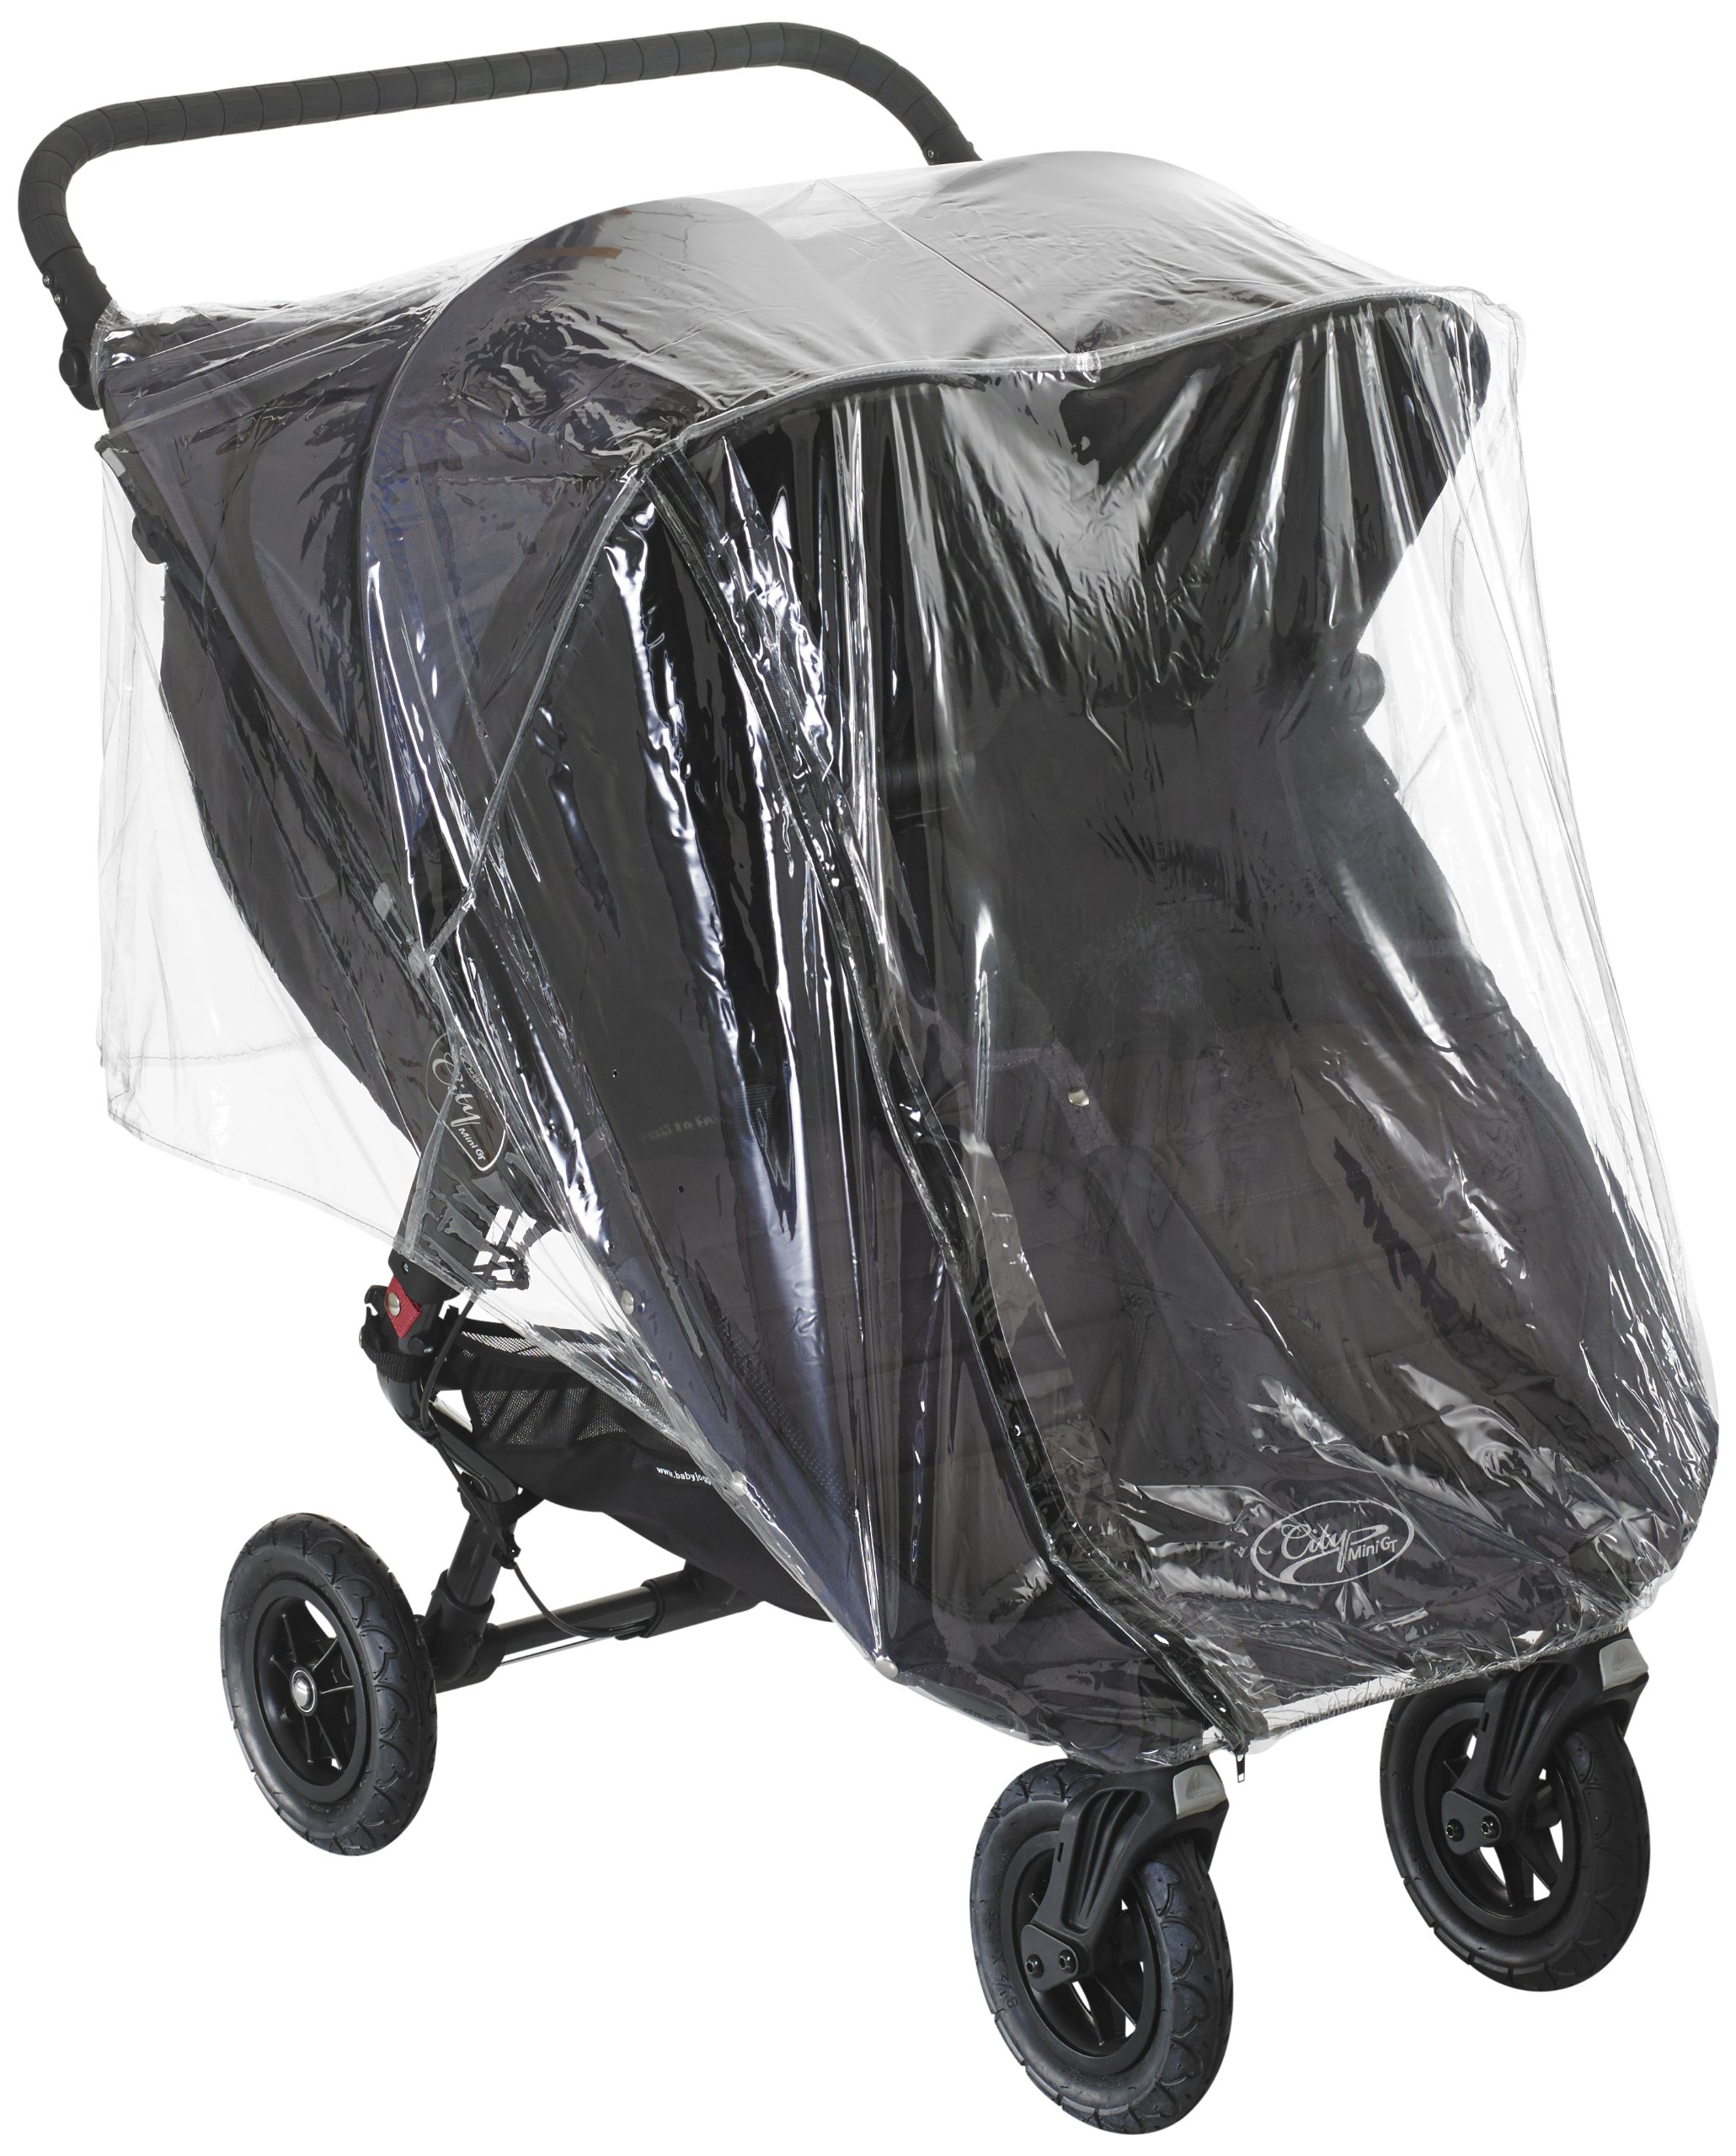 Baby Jogger Raincover GT/ Mini Double Inc. Carrycot  The raincover fits the Baby Jogger City MiniDouble and City Mini GT double strollers, even when in carrycot mode when using the pushchair with either one or two Baby Jogger compact carrycots Multiple small air holes allow proper ventilation to provide a dry, safe environment; the strong PVC offers protection from both wind and rain The raincover features a zipped panel to allow quick and easy access to the child when in use 1